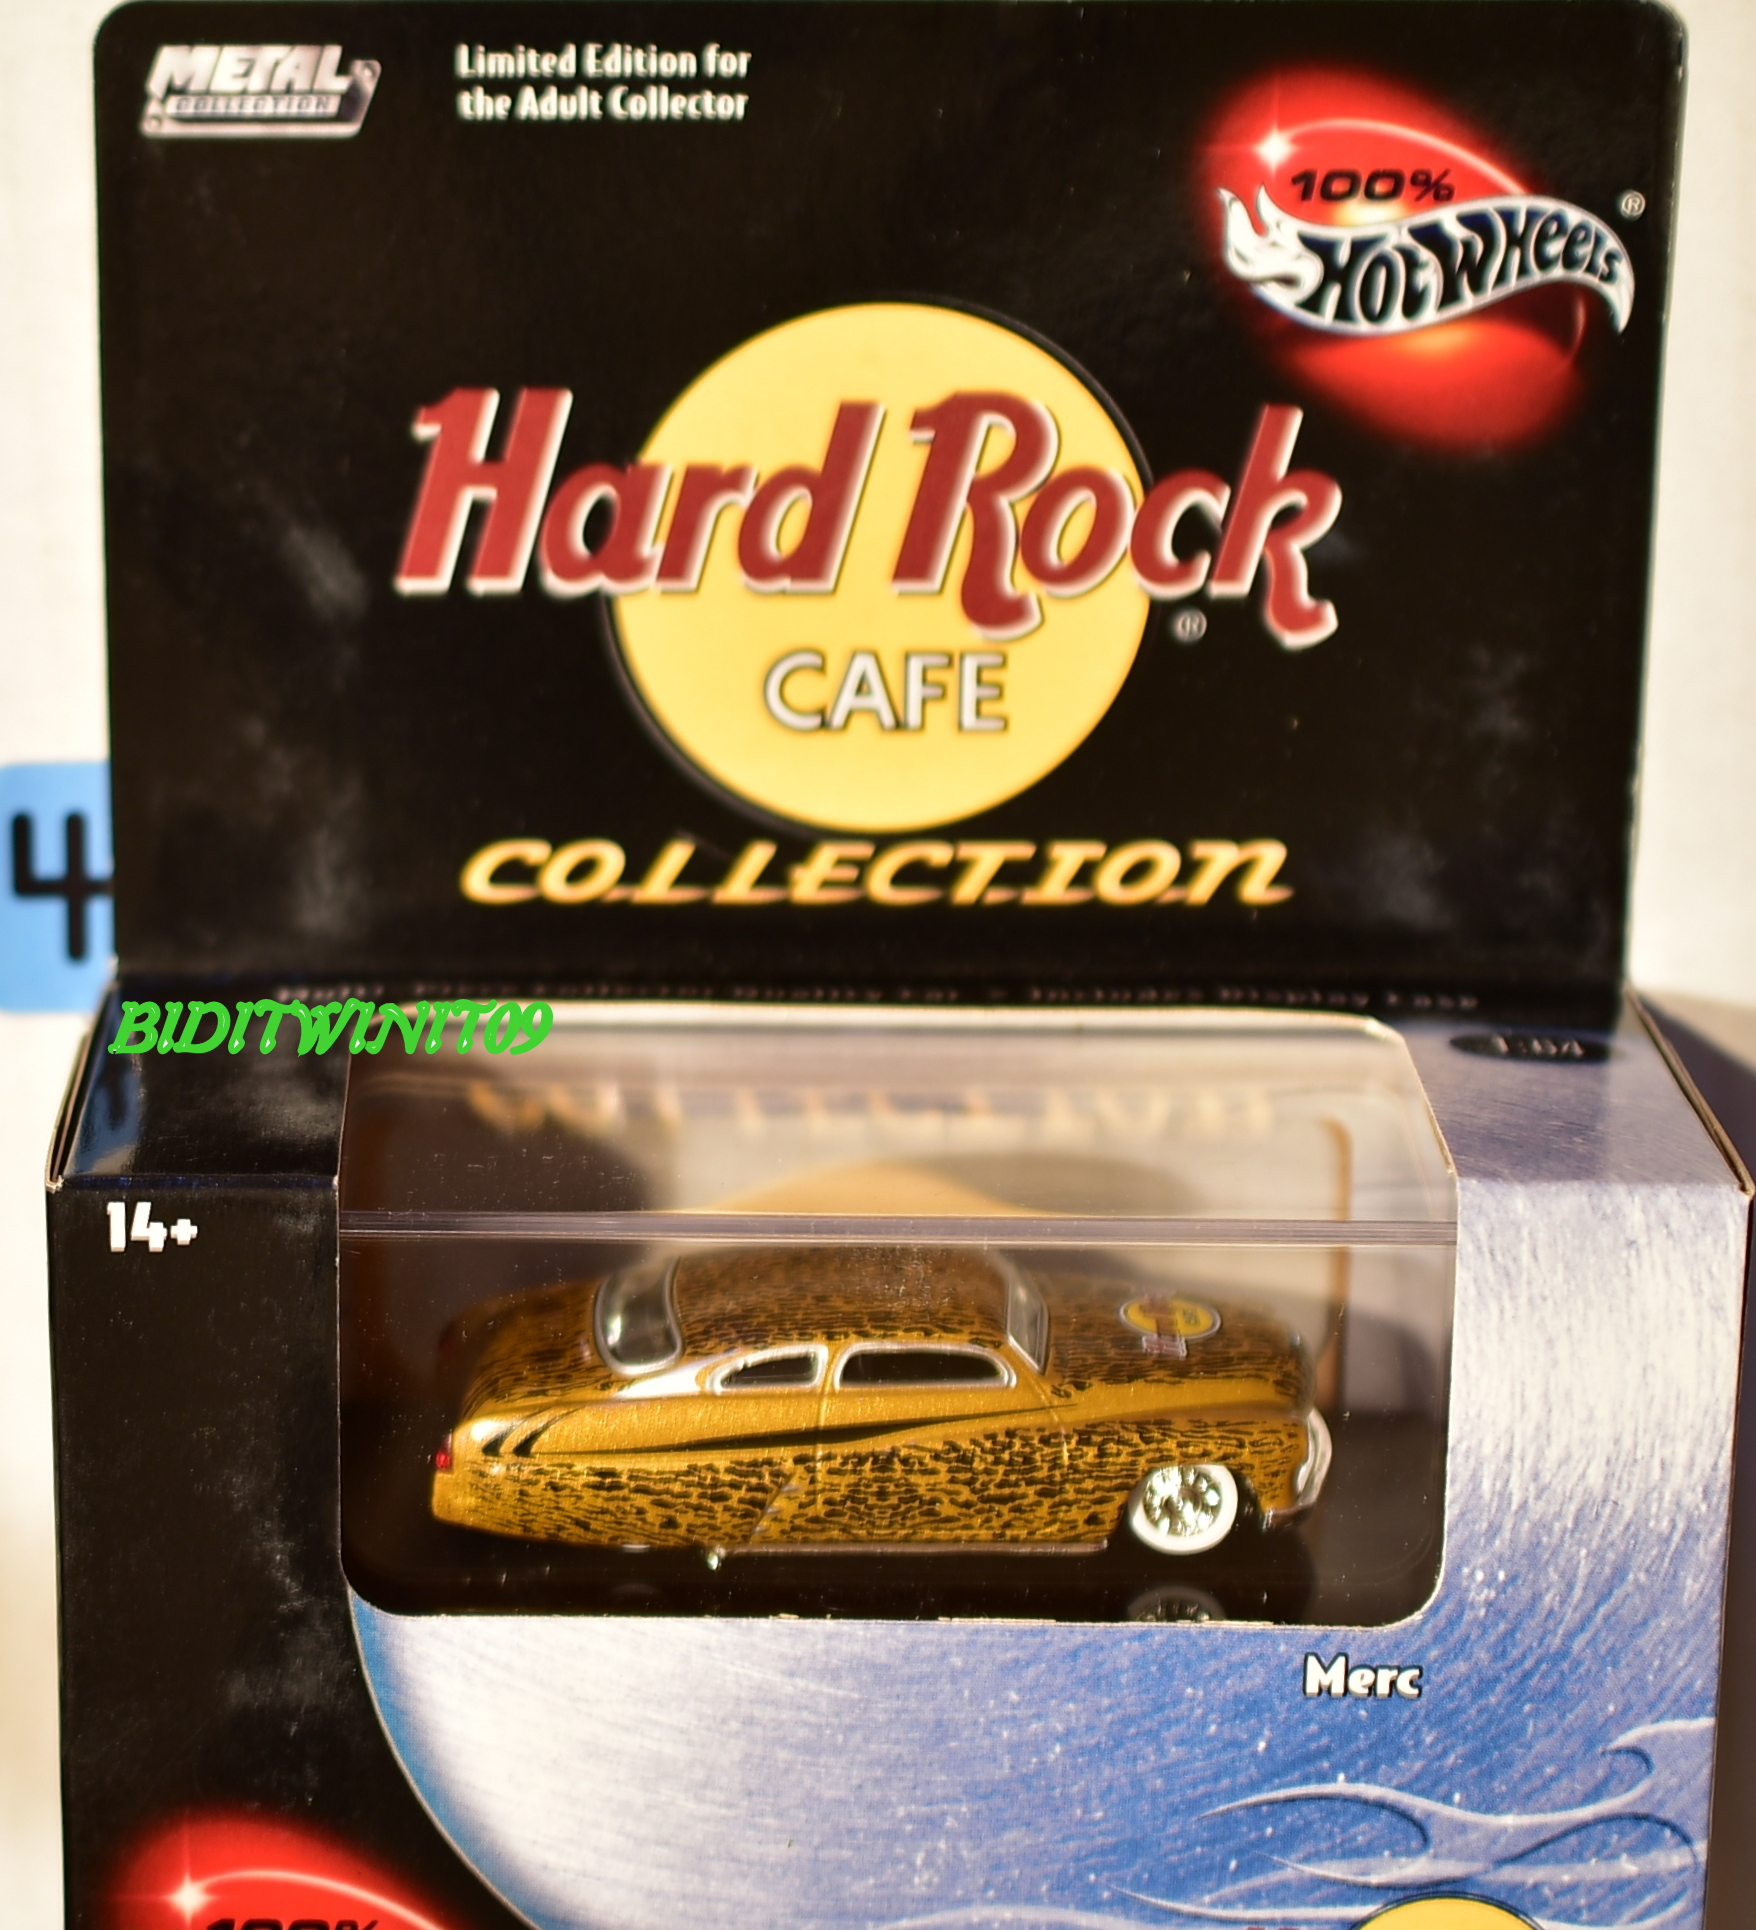 HOT WHEELS 100% HARD ROCK CAFE COLLECTION MERC LIMITED EDITION